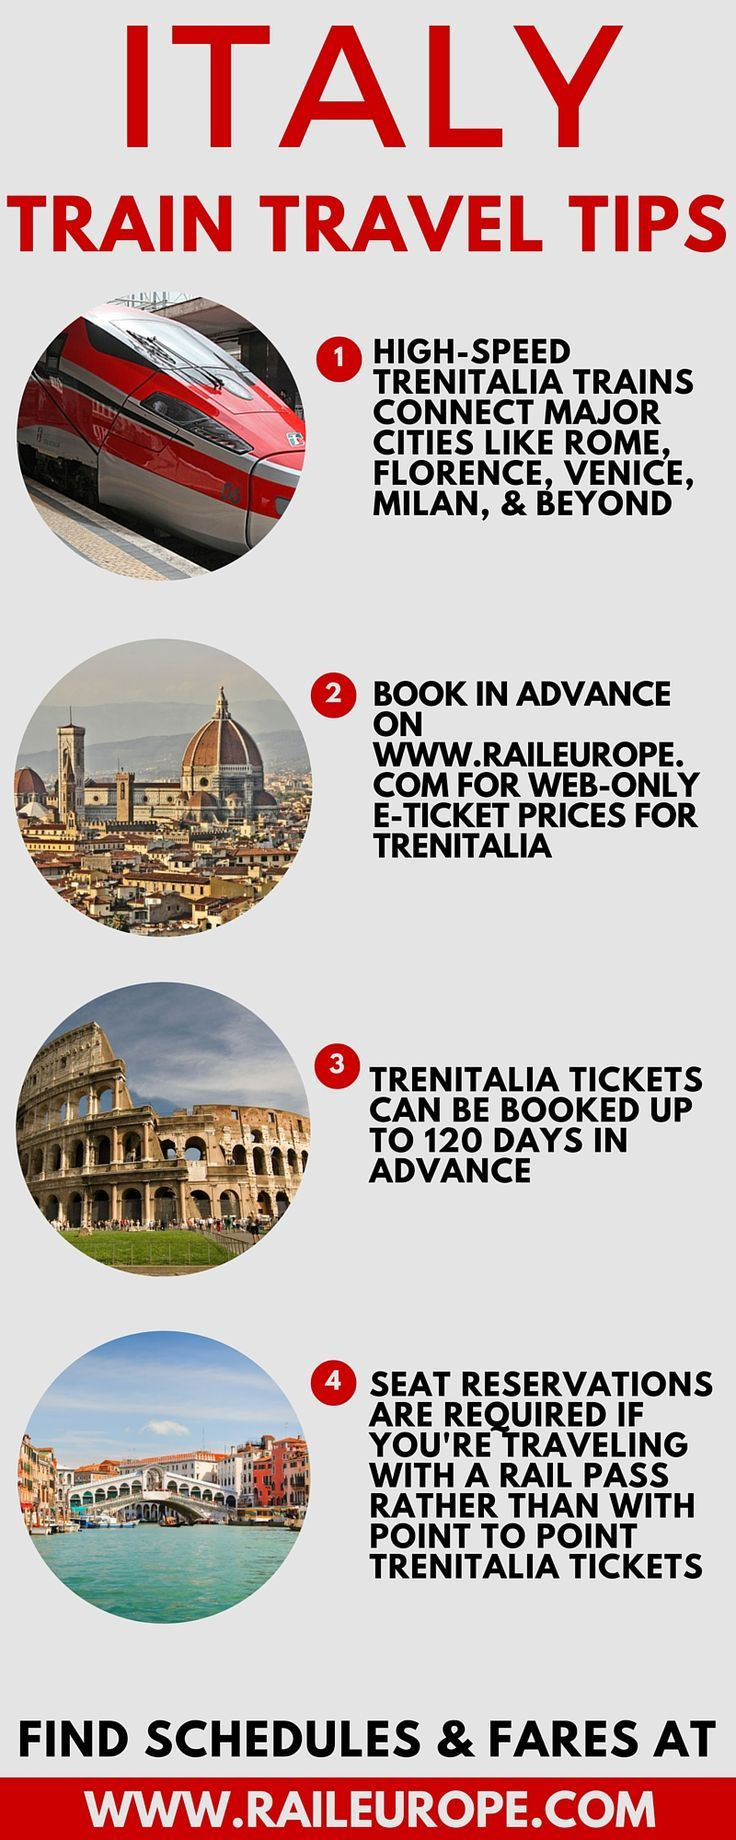 #Italy Train Travel Tips from Rail Europe, the European train travel experts! Some helpful tips if you want to ride the trains in Italy.